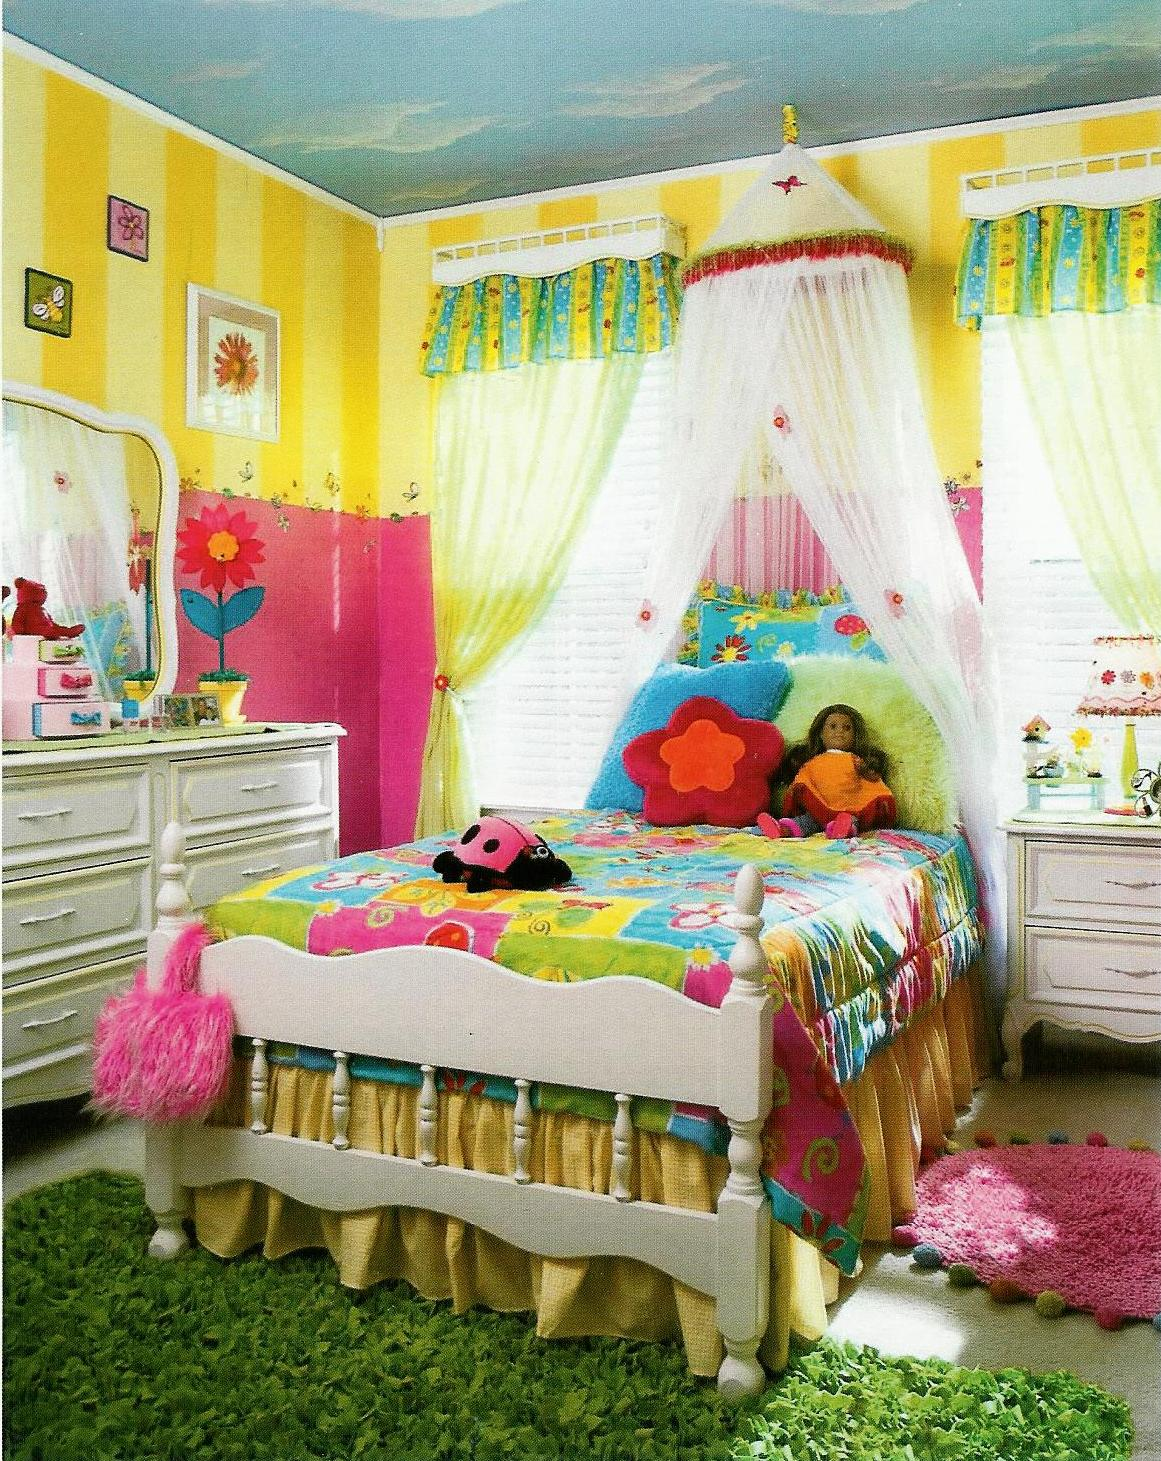 1. Select a Gender Neutral Theme. The first step in decorating a gender neutral nursery is to choose a neutral theme. A few fun themes to consider are rainbows, sunshine, animals, nature and sheep.